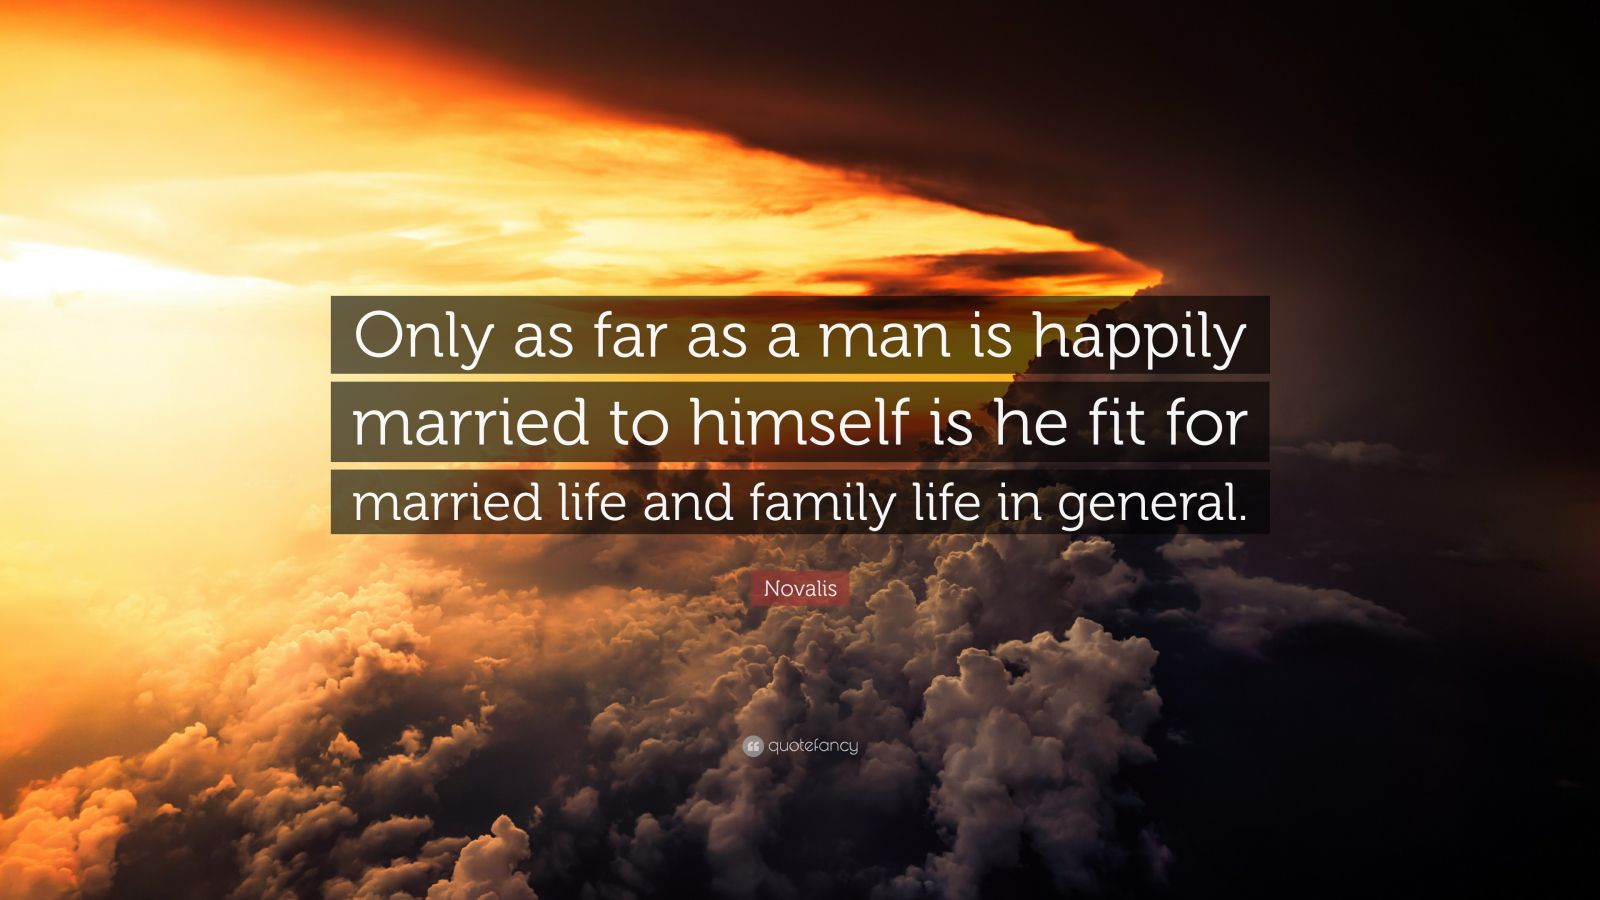 """Novalis Quote: """"Only as far as a man is happily married to himself is he fit for married life and family life in general."""""""